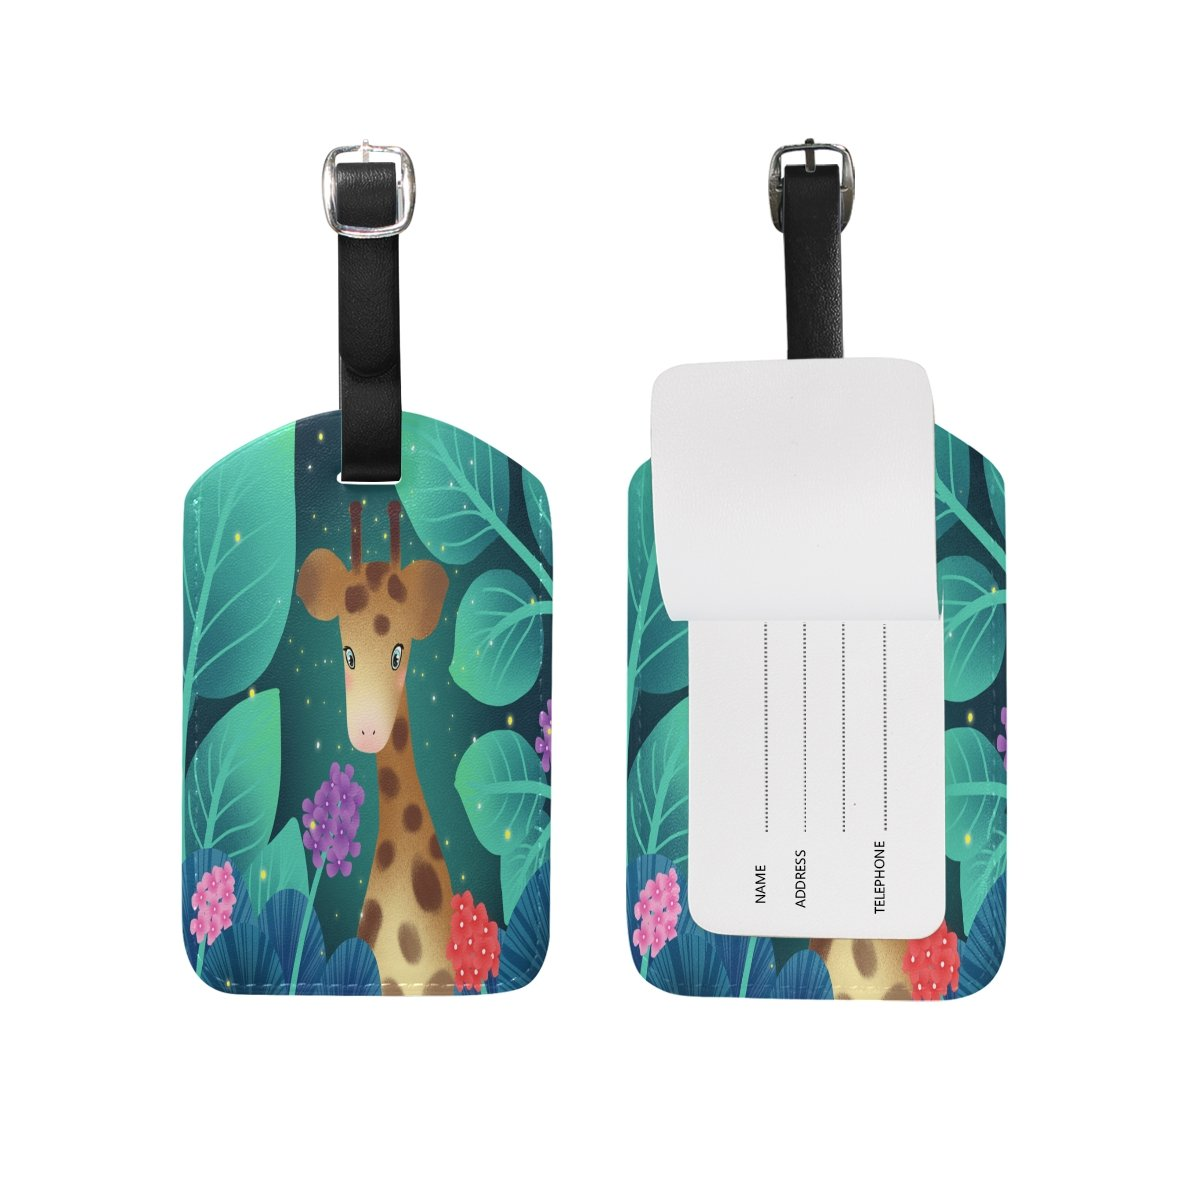 1Pcs Saobao Travel Luggage Tag The Lovely Giraffe PU Leather Baggage Suitcase Travel ID Bag Tag